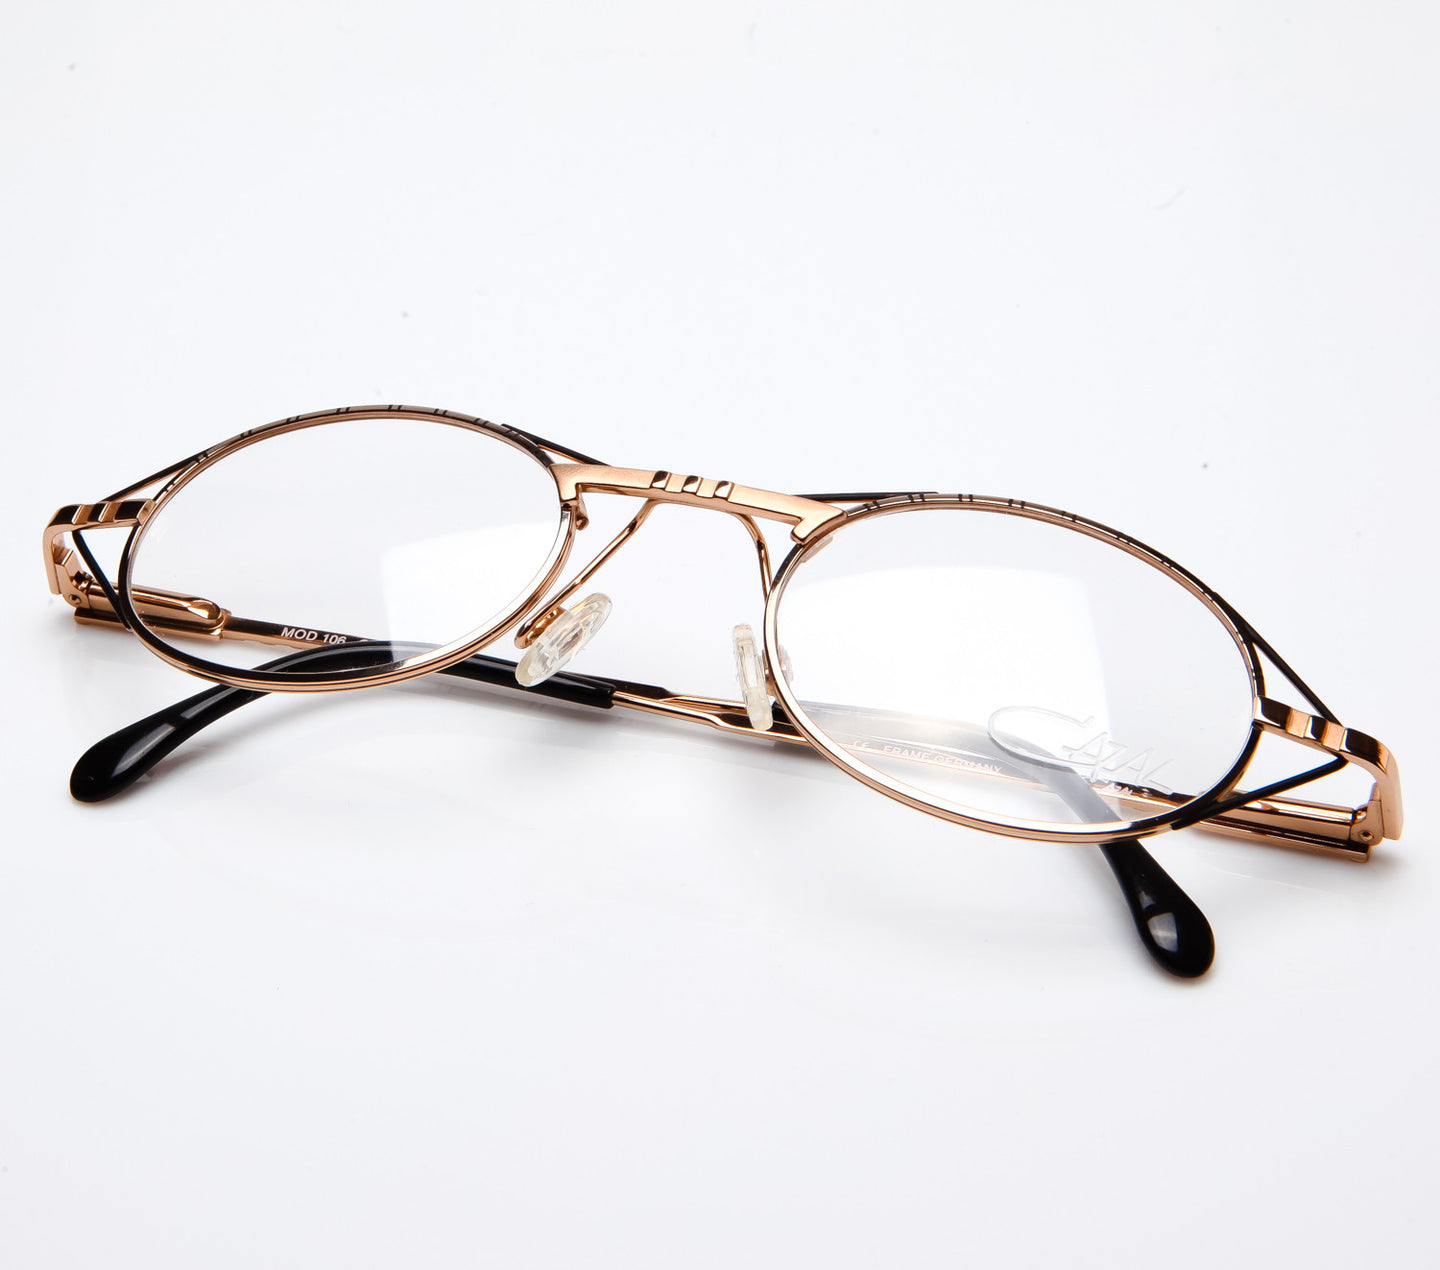 Cazal 106 516, Cazal , glasses frames, eyeglasses online, eyeglass frames, mens glasses, womens glasses, buy glasses online, designer eyeglasses, vintage sunglasses, retro sunglasses, vintage glasses, sunglass, eyeglass, glasses, lens, vintage frames company, vf